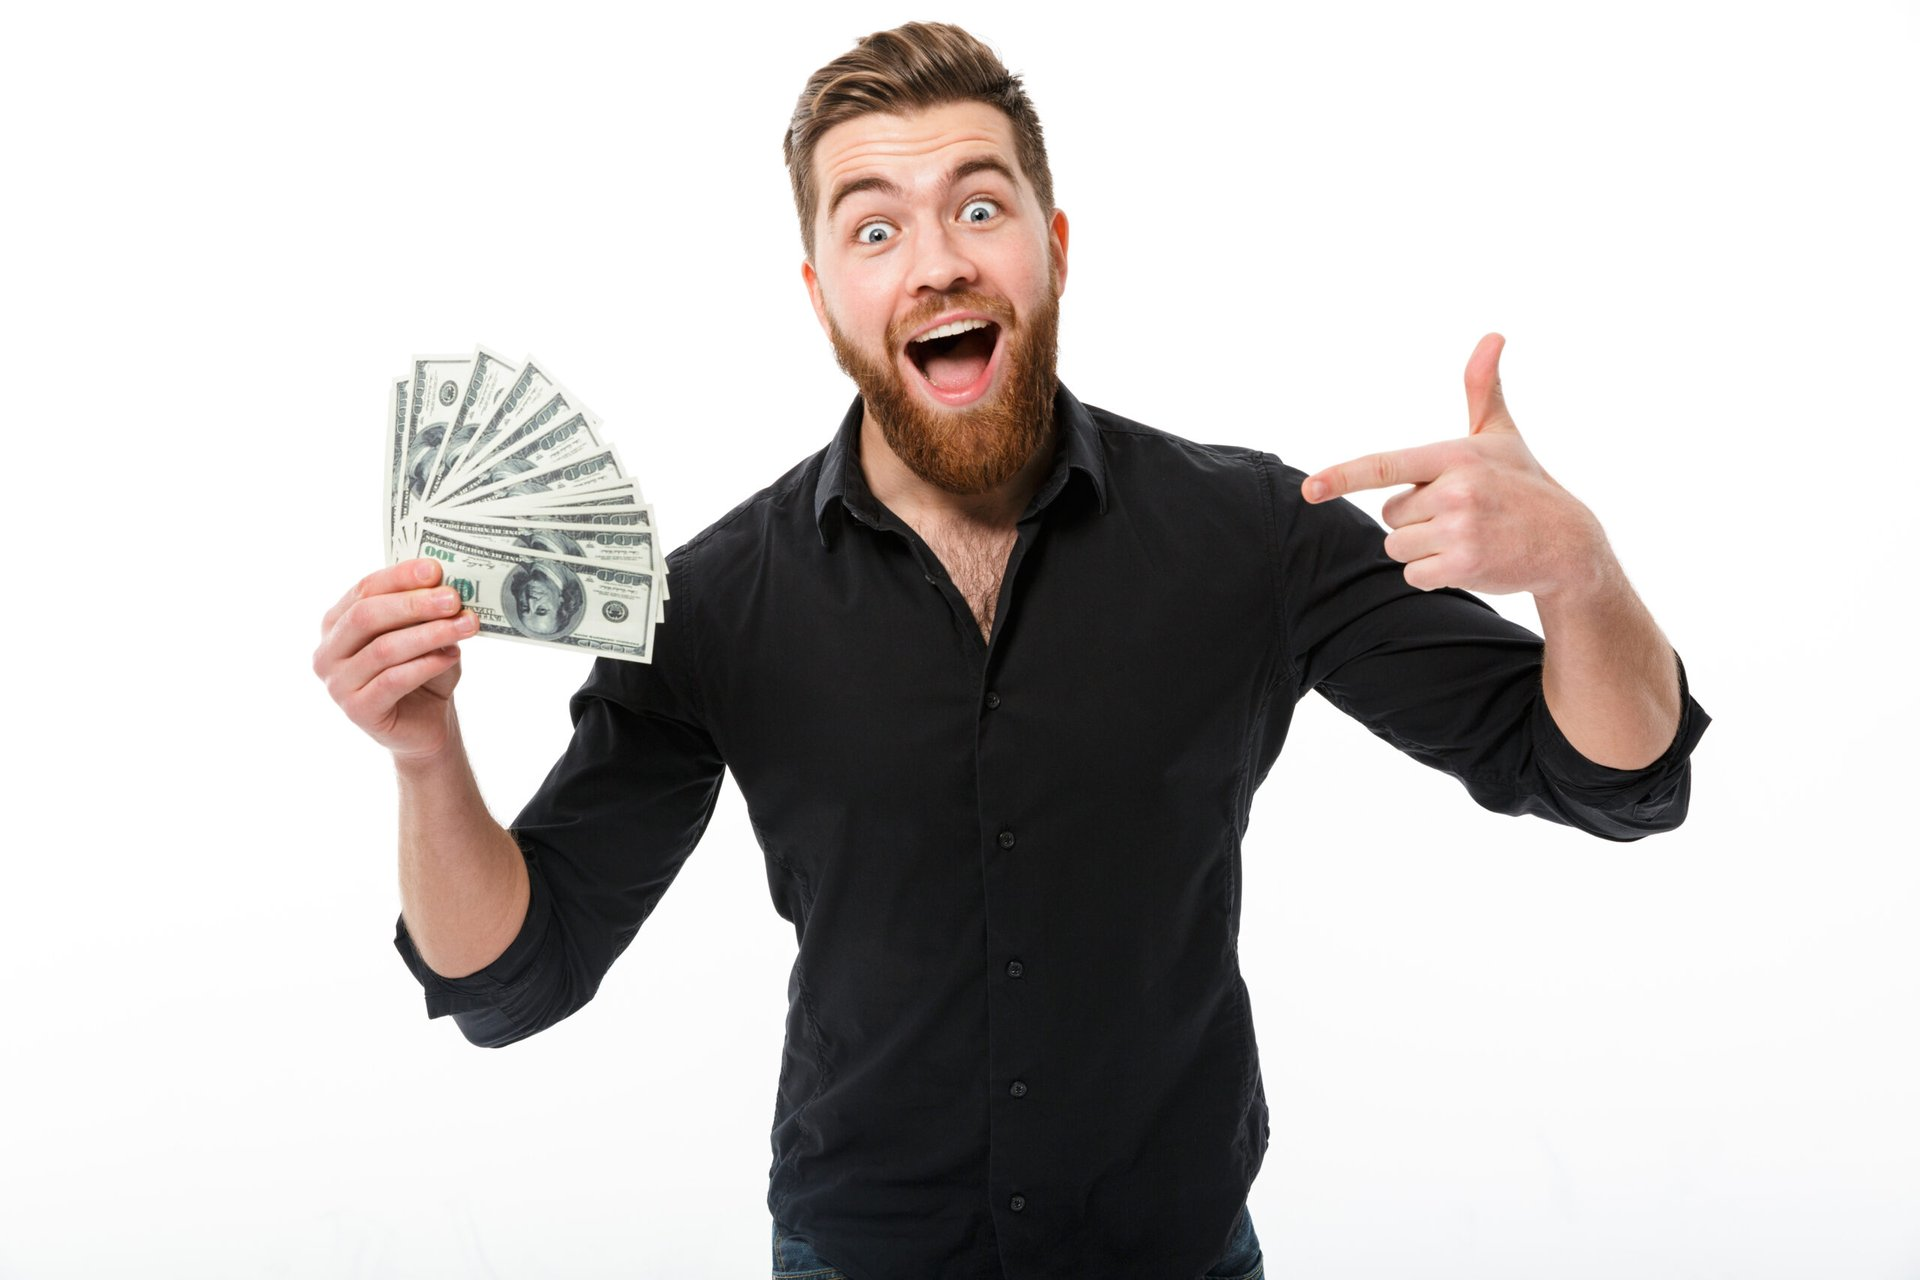 Happy man with beard excited about cash back or extra money